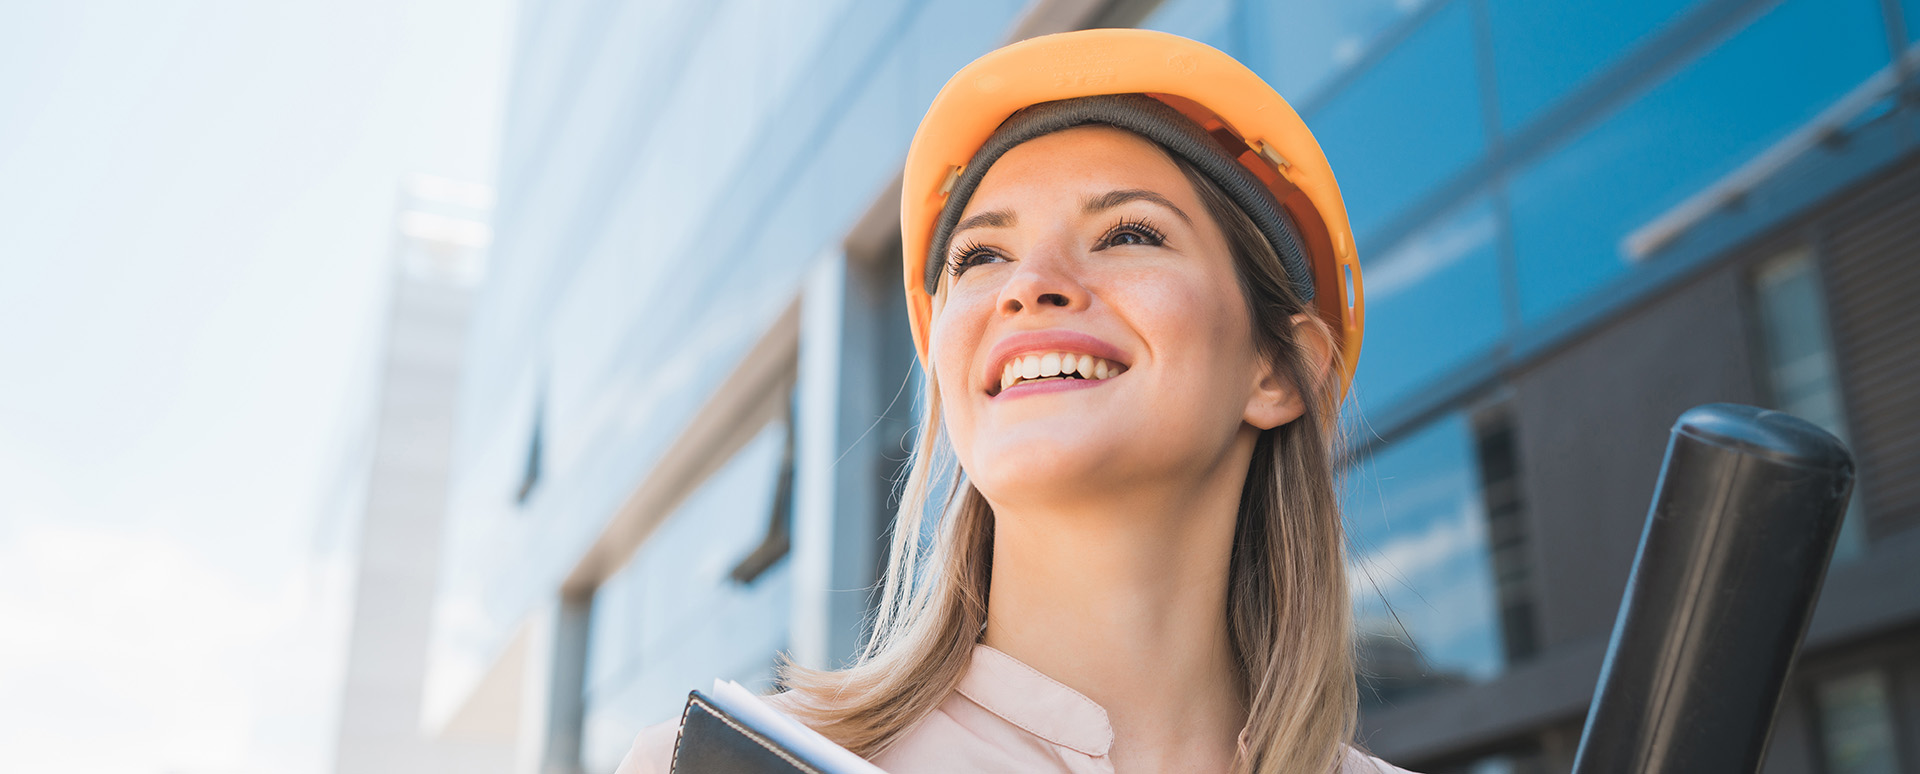 Women in Construction: Thought Leaders and Decision Makers